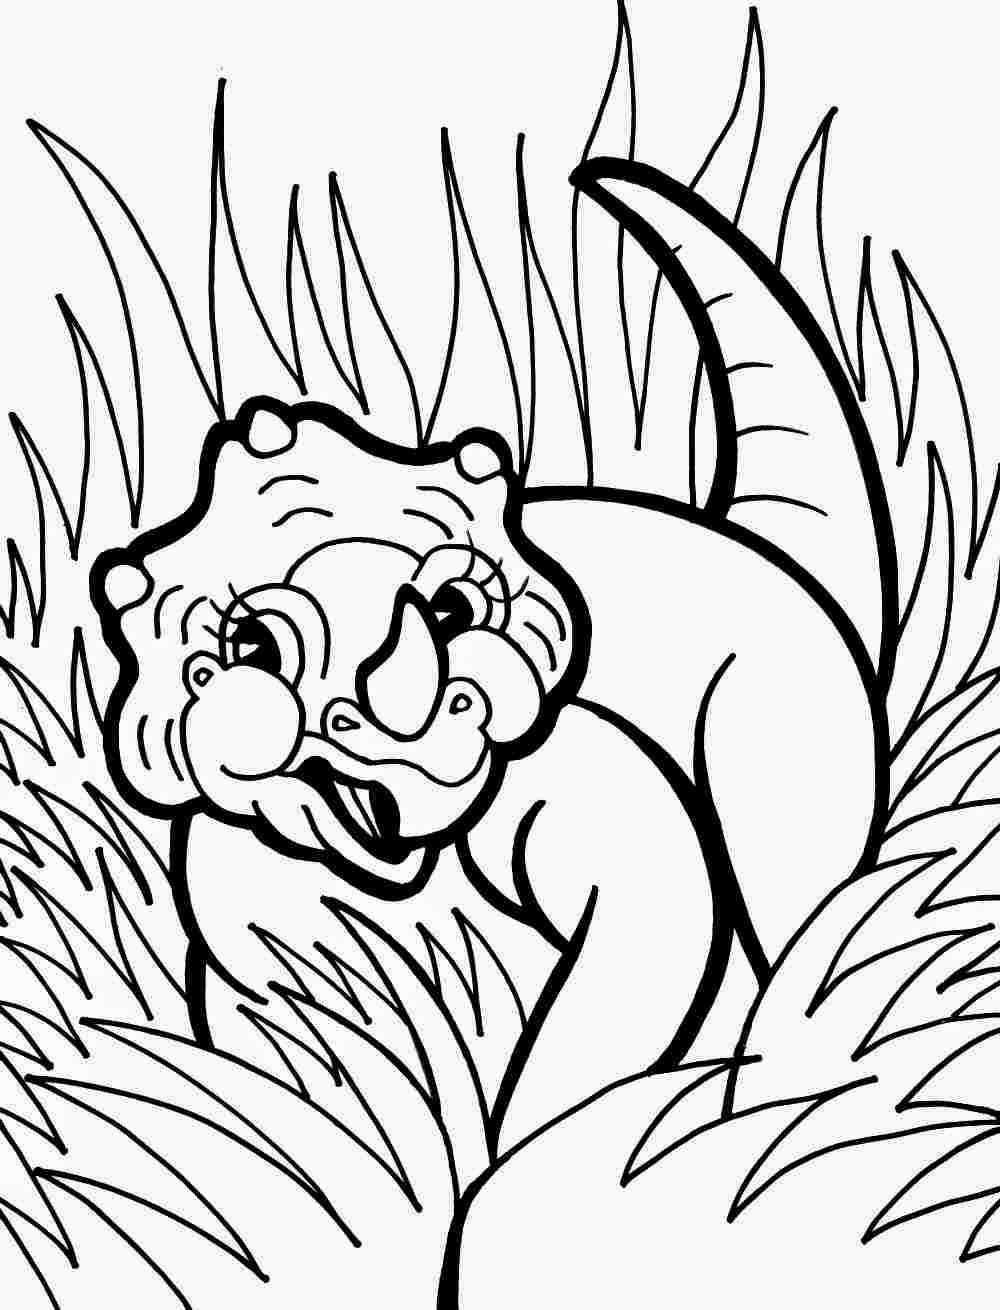 dinosaurs printable coloring pages coloring pages dinosaur free printable coloring pages coloring pages printable dinosaurs 1 2